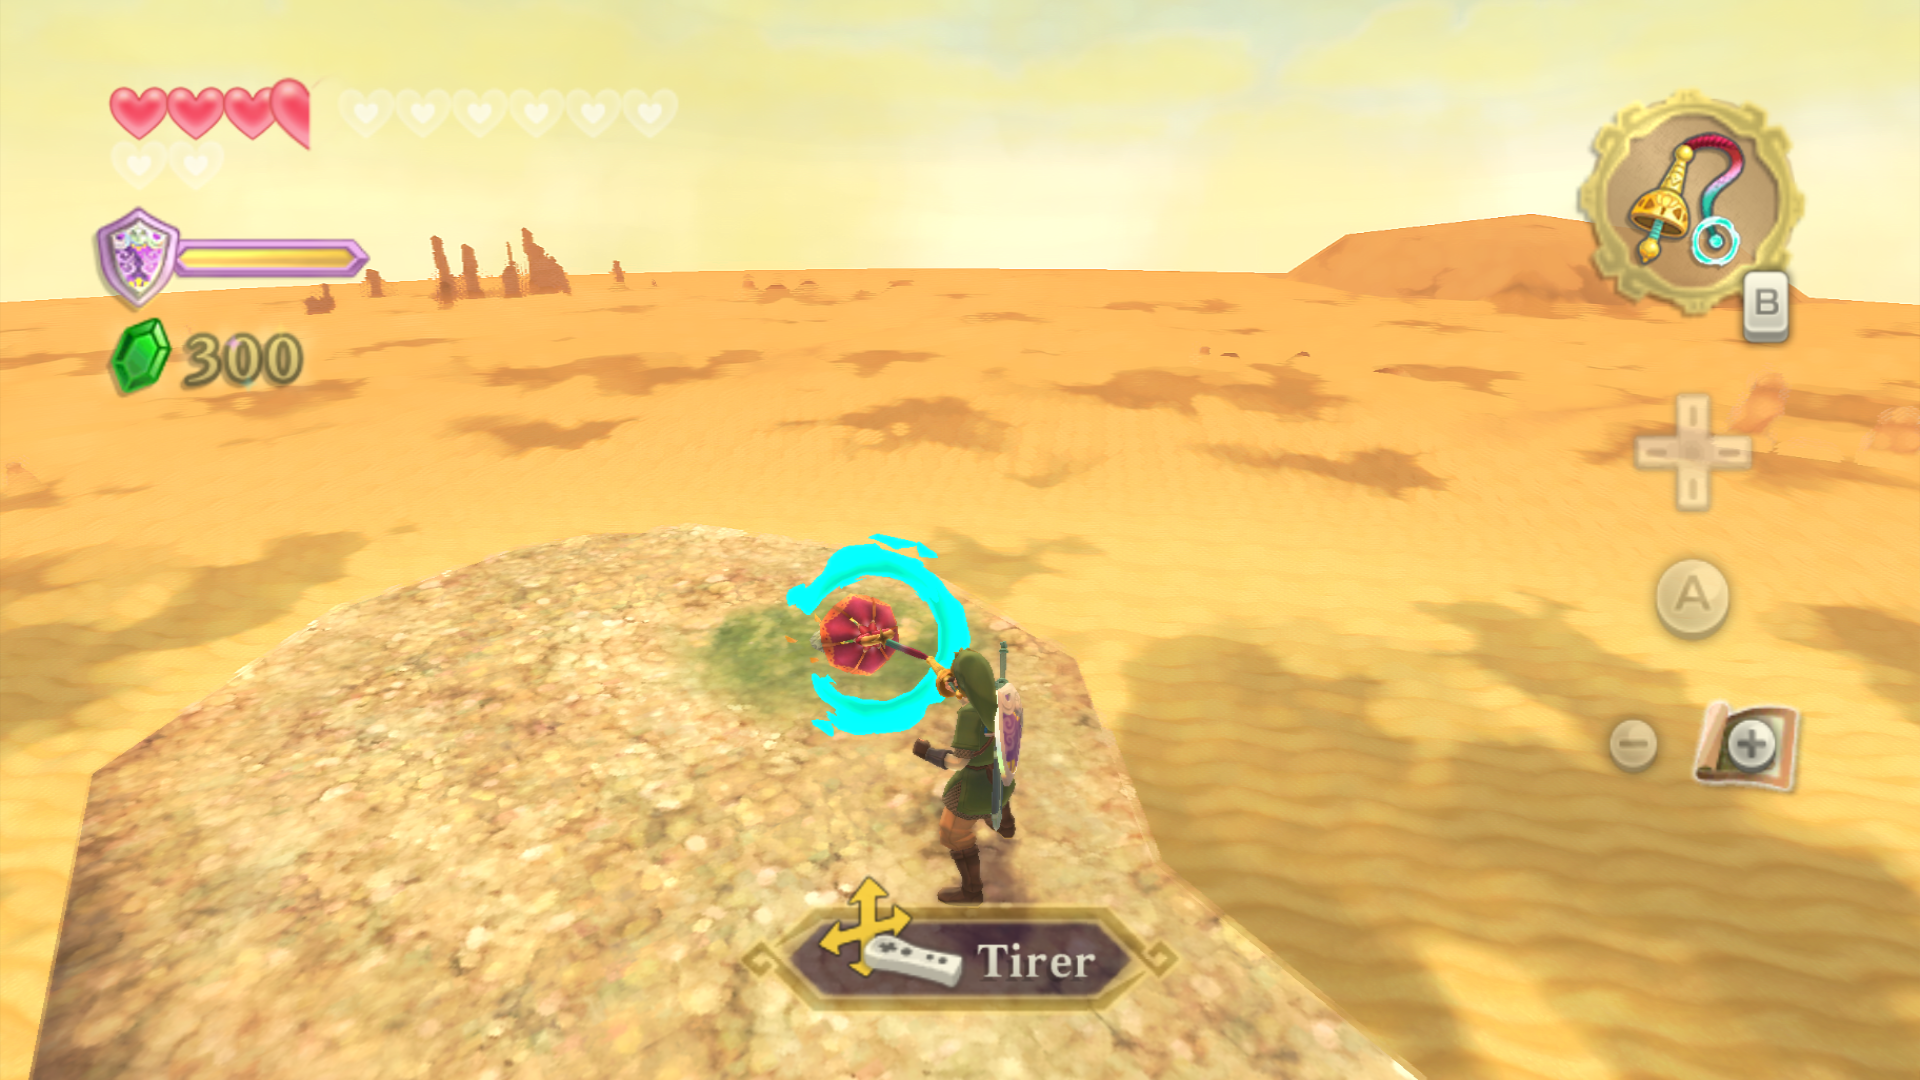 solution de skyward sword maison du capitaine chantier